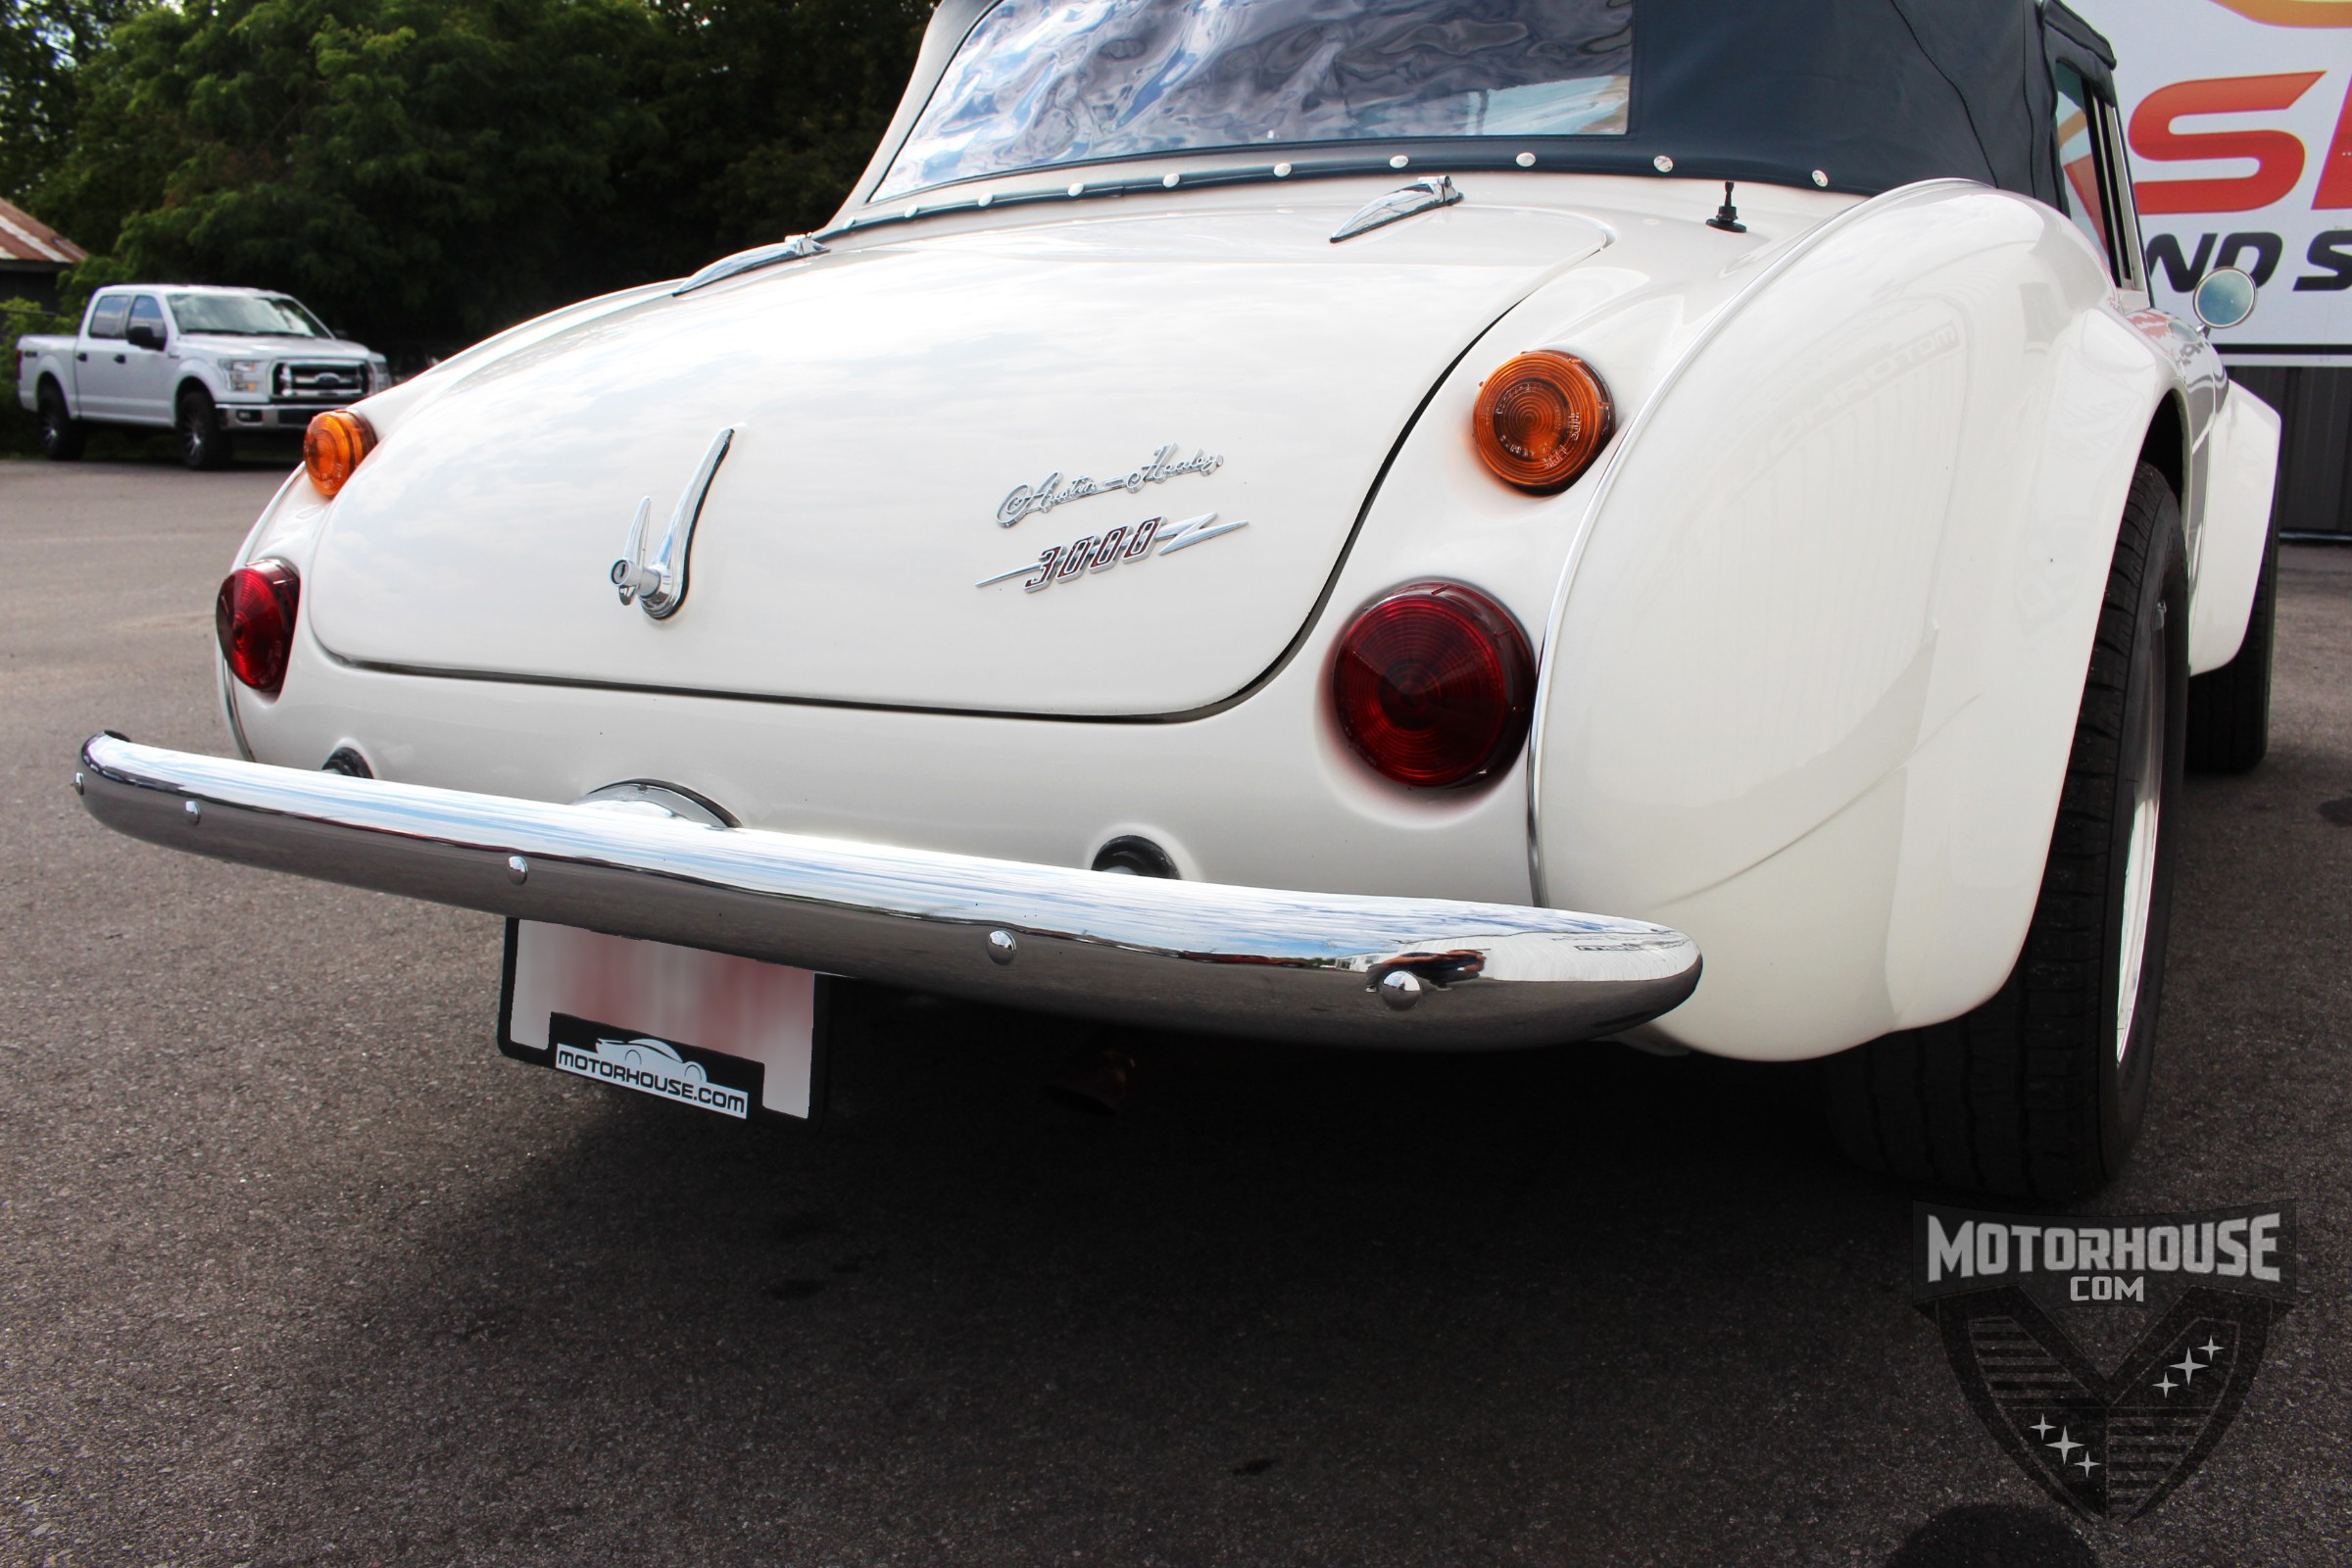 1965 Austin-Healey 3000Z Convertable (Stk: 1375) in Carleton Place - Image 12 of 48